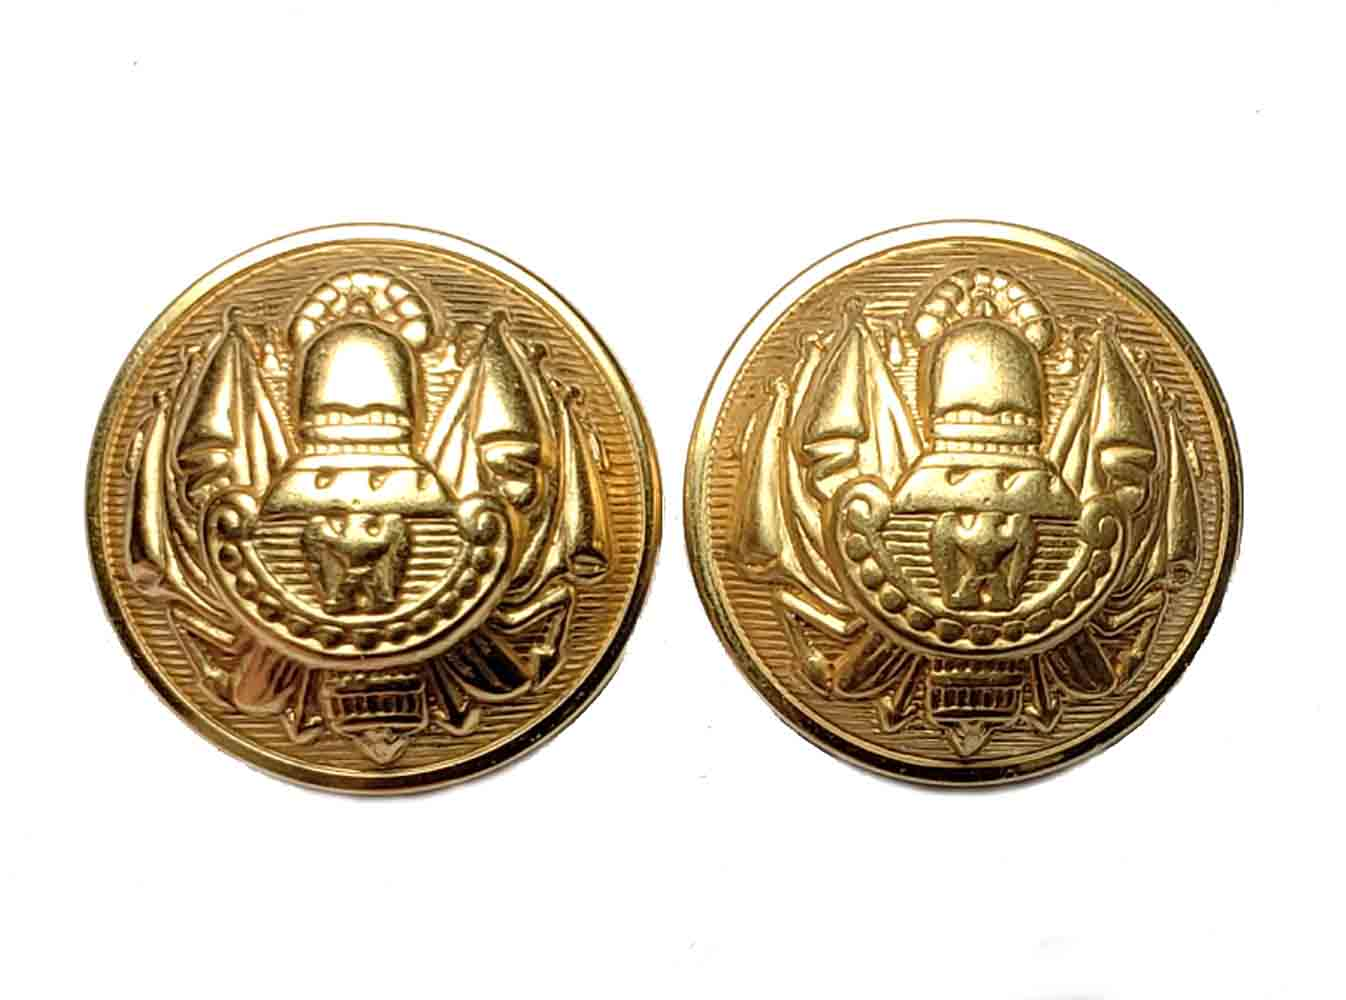 Two Vintage Amherst Dome Blazer Sport Coast or Jacket Buttons Gold Brass Shank Men's 7/8 Inch